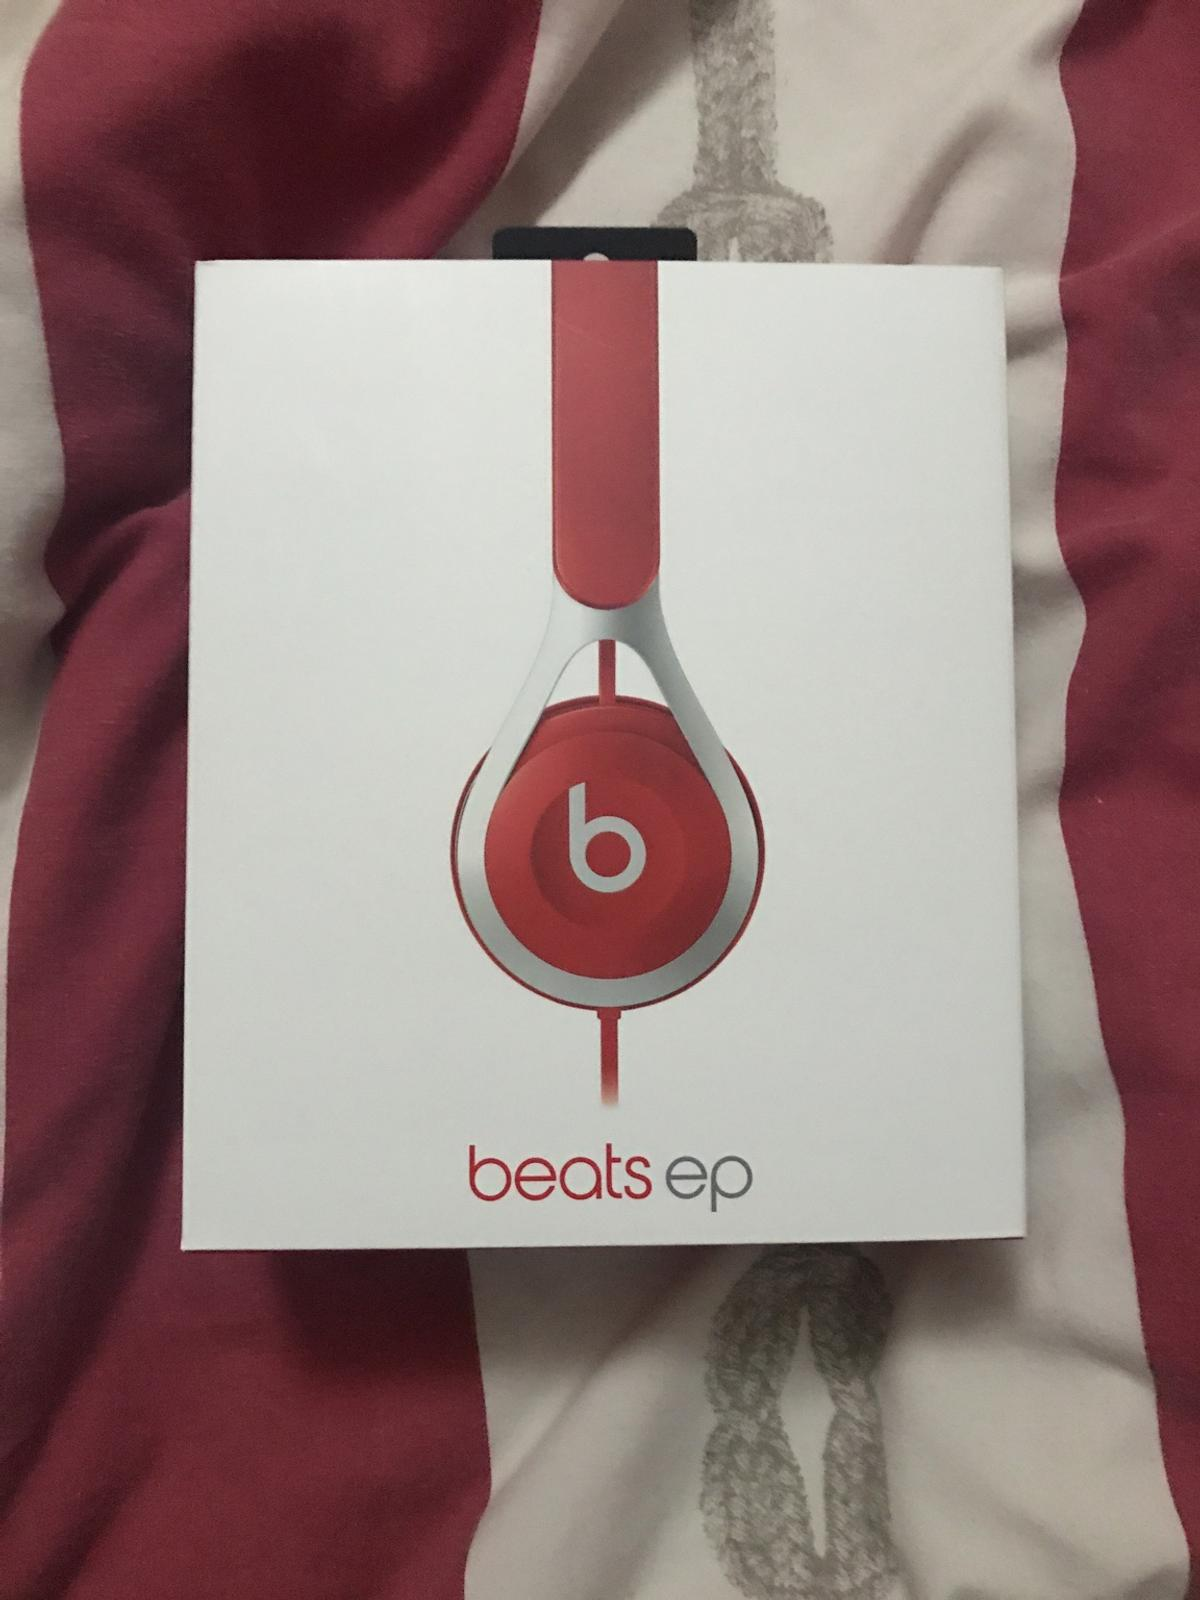 They have been worn about twice, they were a Christmas present but I don't like over the top headphone, give me any offers